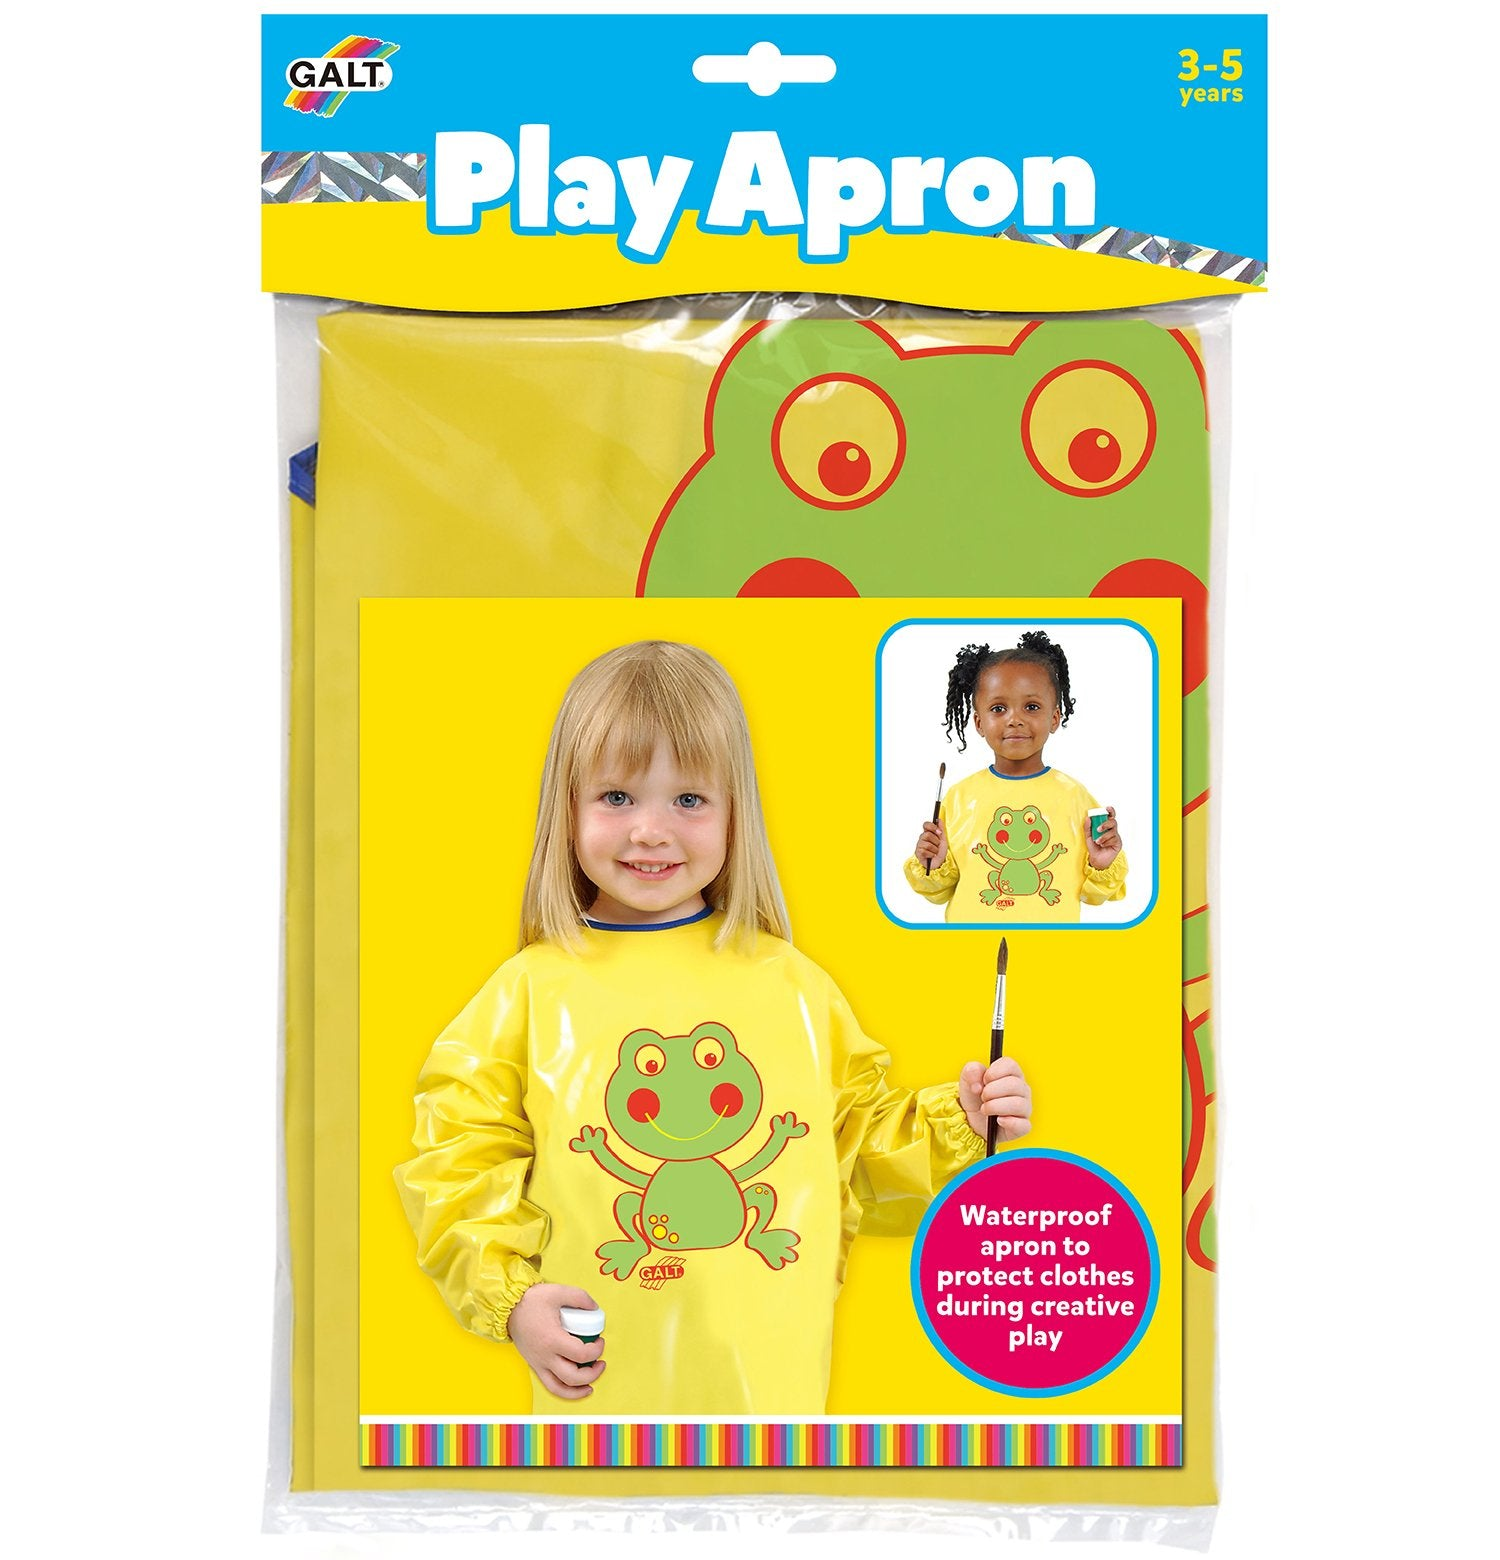 Play Apron - Galt